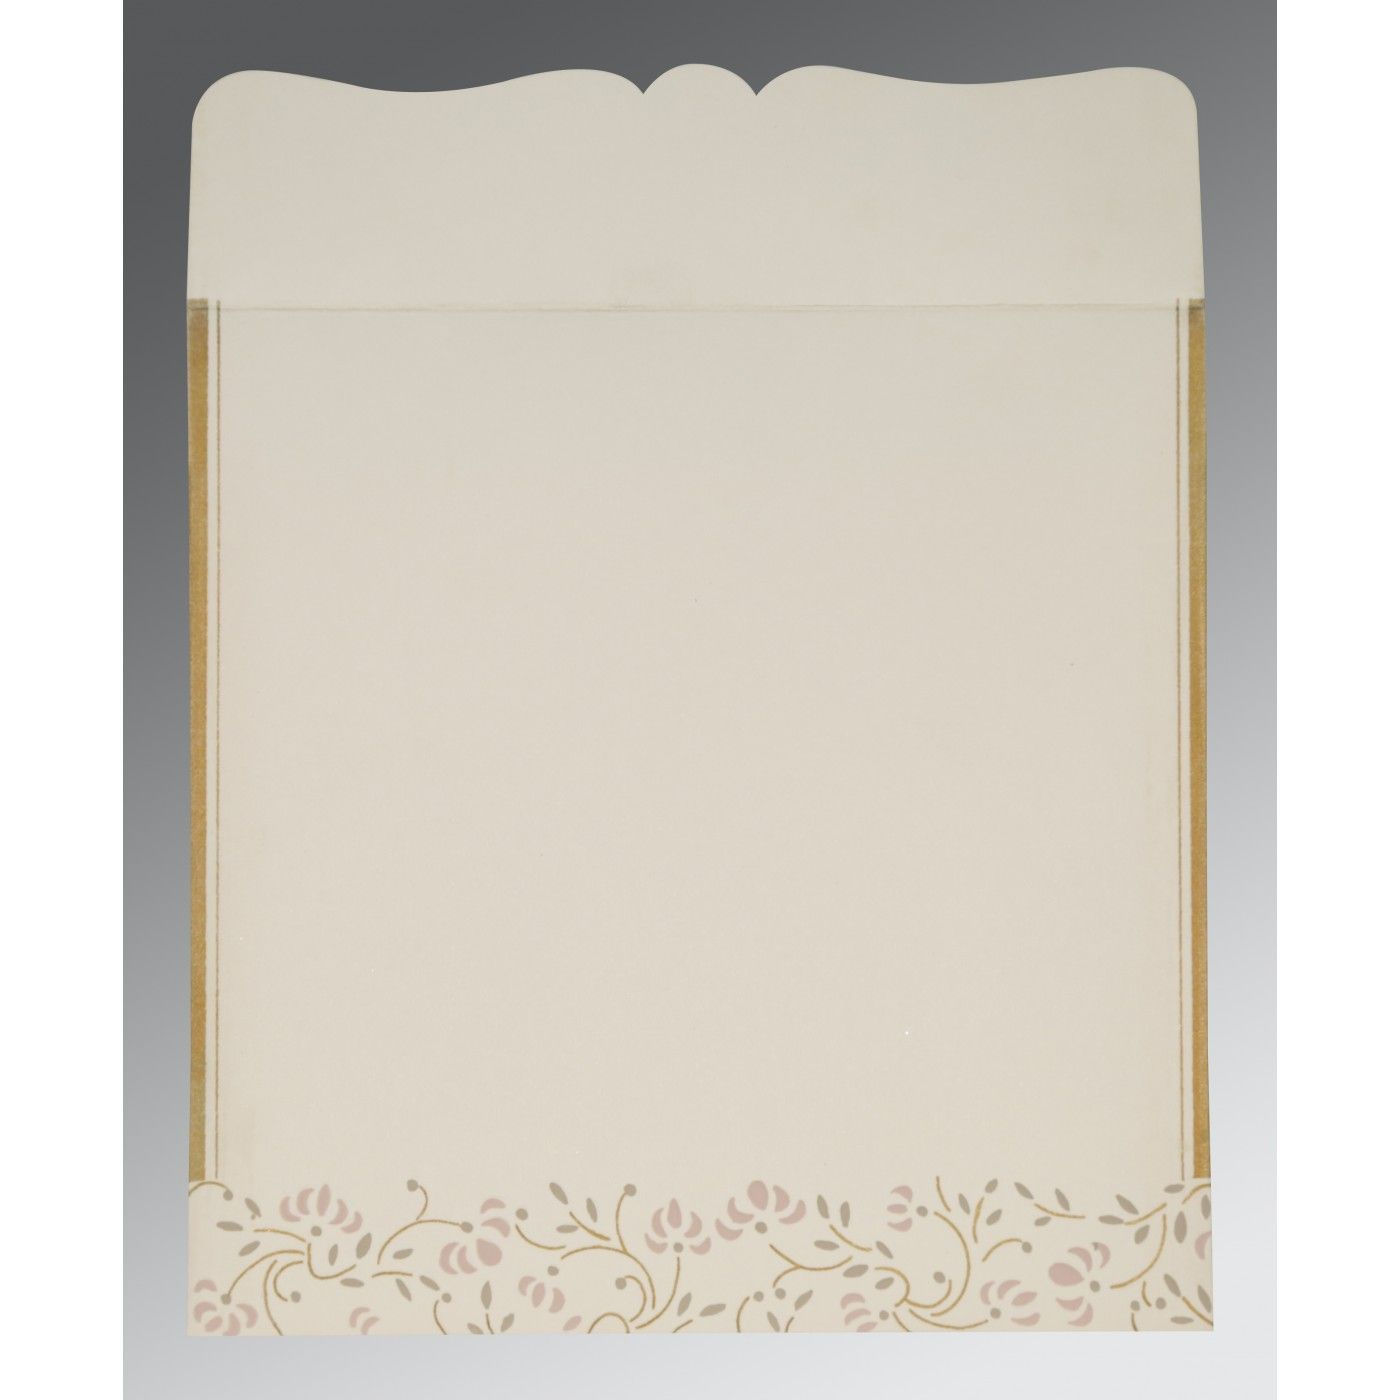 OFF-WHITE MATTE EMBOSSED WEDDING INVITATION : CIN-2153 - IndianWeddingCards